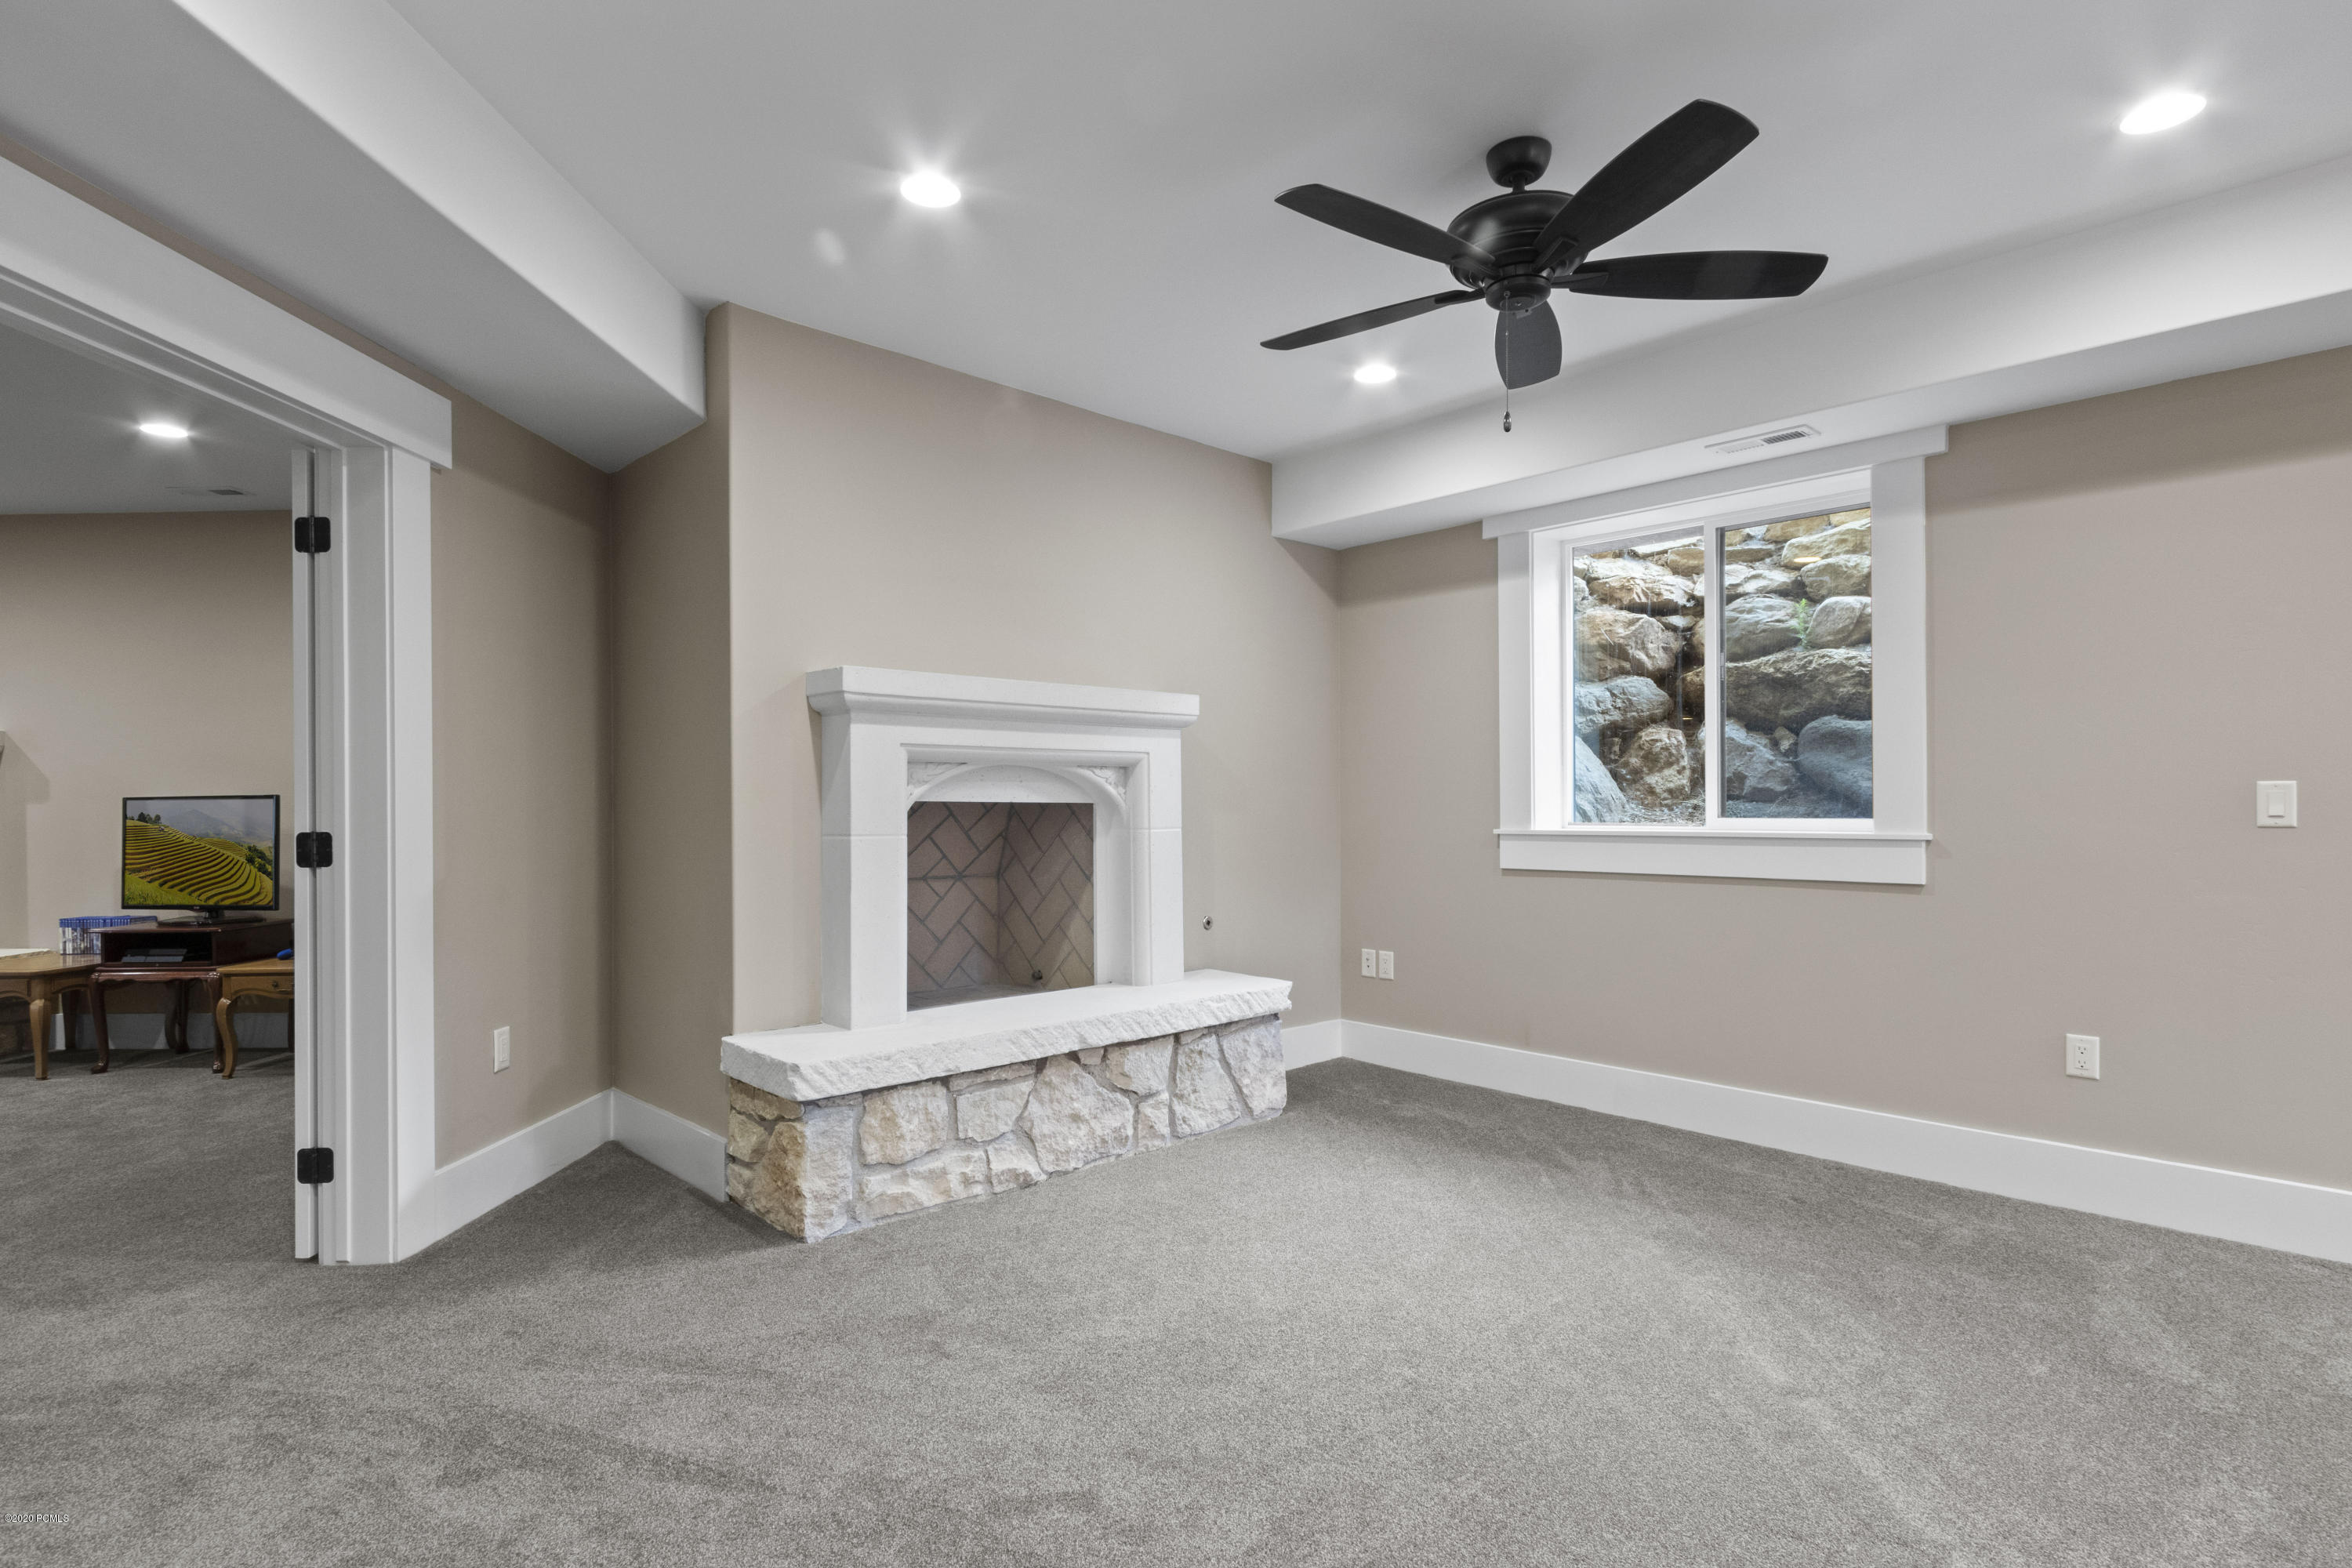 955 Coldwater Way, Midway, Utah 84049, 5 Bedrooms Bedrooms, ,5 BathroomsBathrooms,Single Family,For Sale,Coldwater,11907560